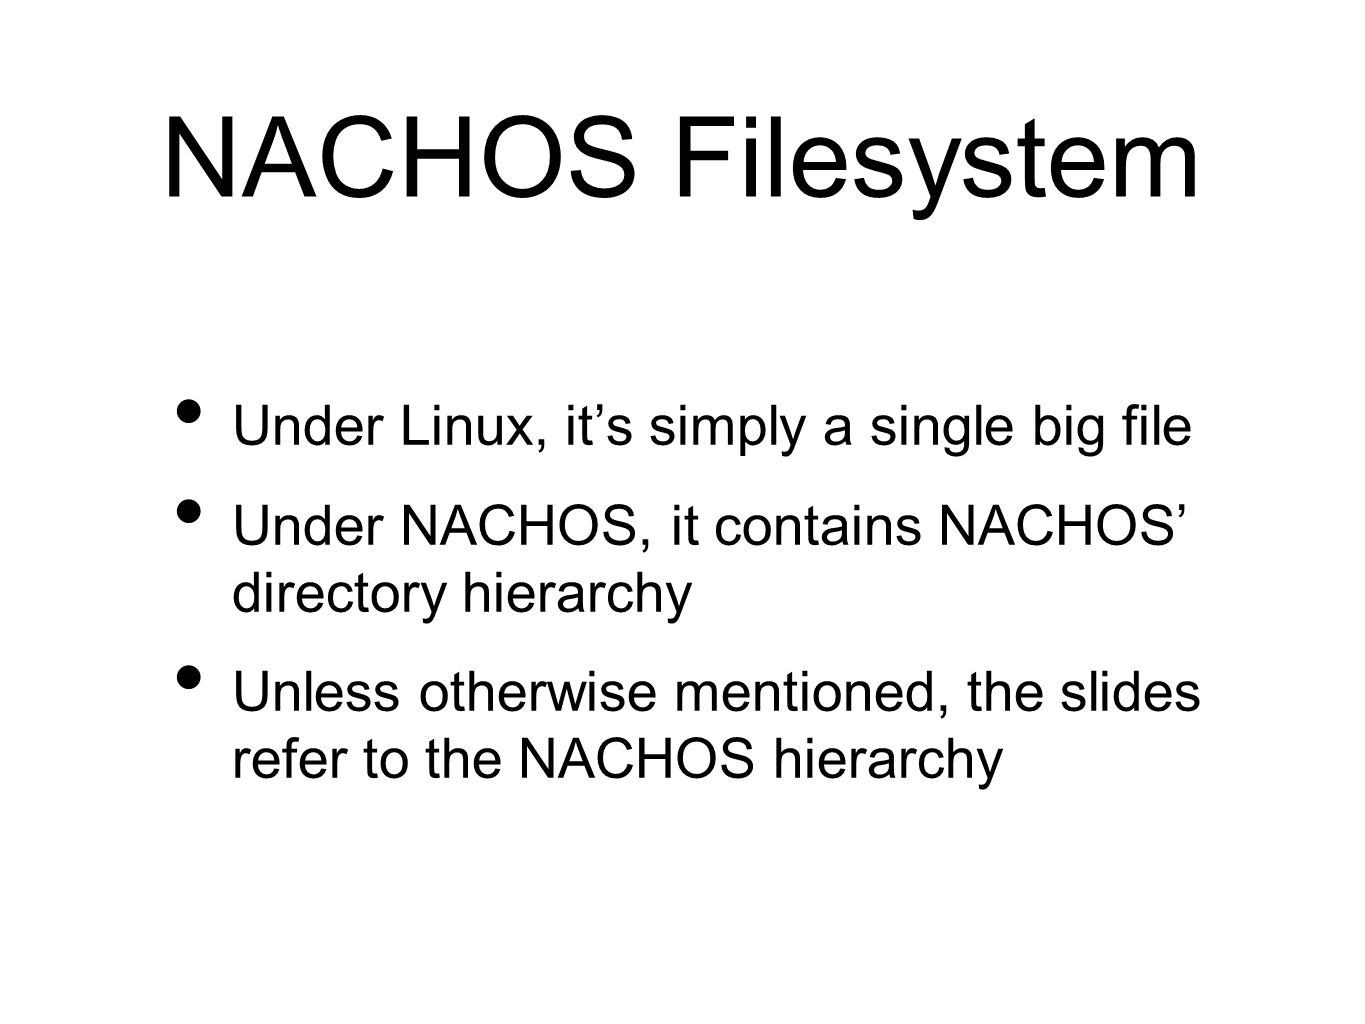 NACHOS Filesystem Under Linux, it's simply a single big file Under NACHOS, it contains NACHOS' directory hierarchy Unless otherwise mentioned, the slides refer to the NACHOS hierarchy